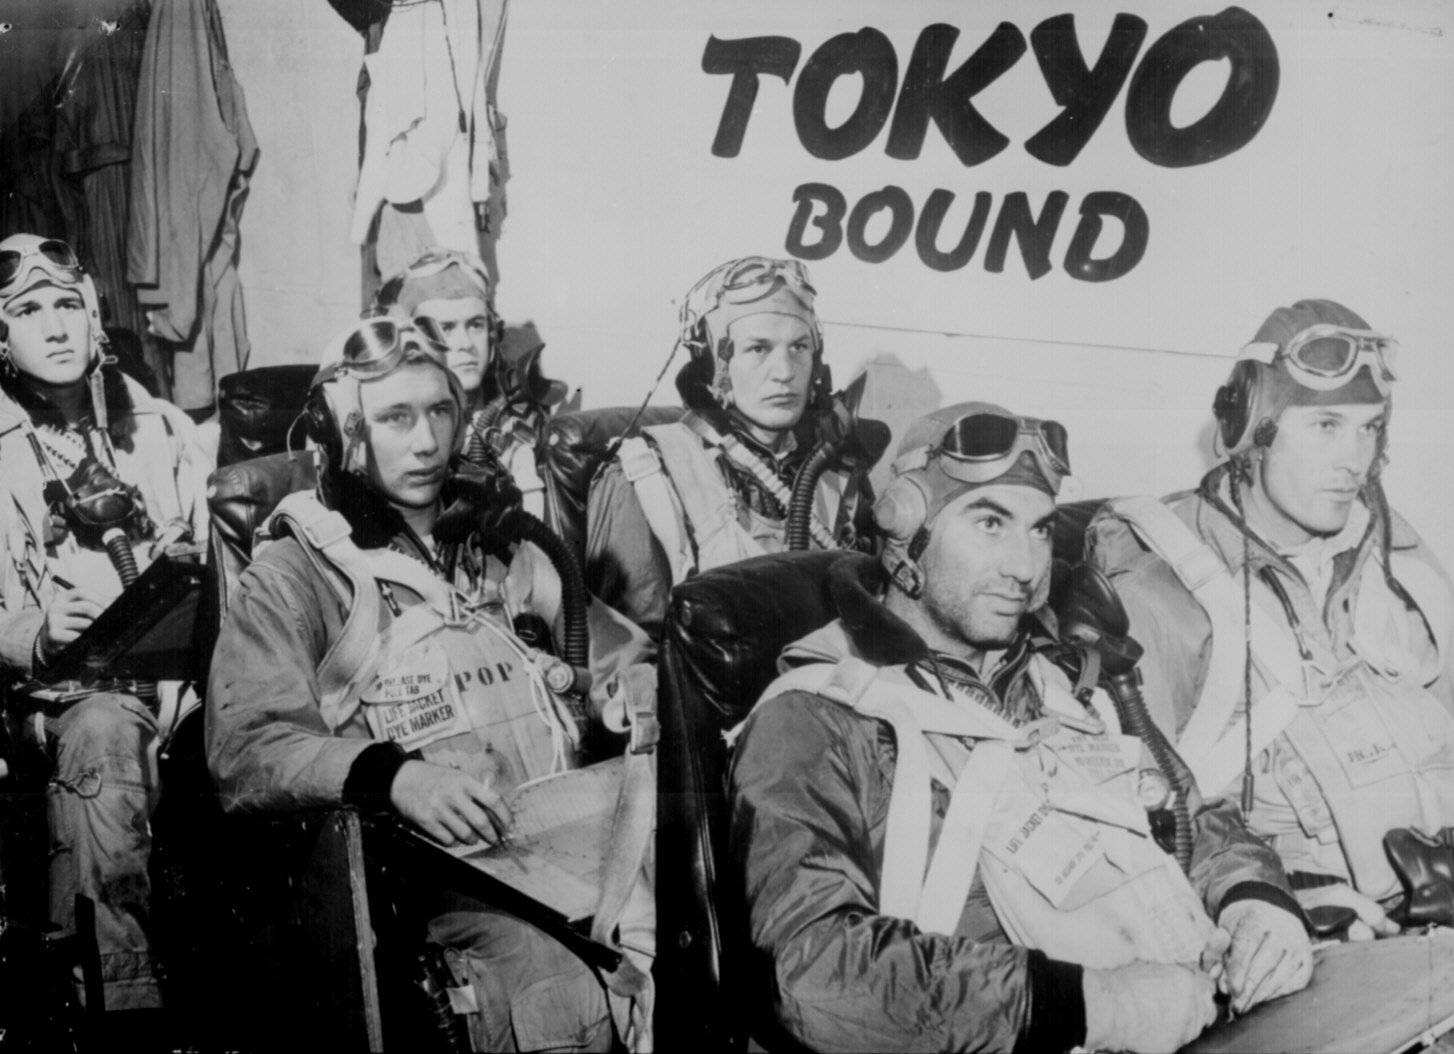 Pilots aboard a U.S. Navy aircraft carrier receive last minute instructions before taking off to attack industrial and military installations in Tokyo. February 17, 1945. National Archives.